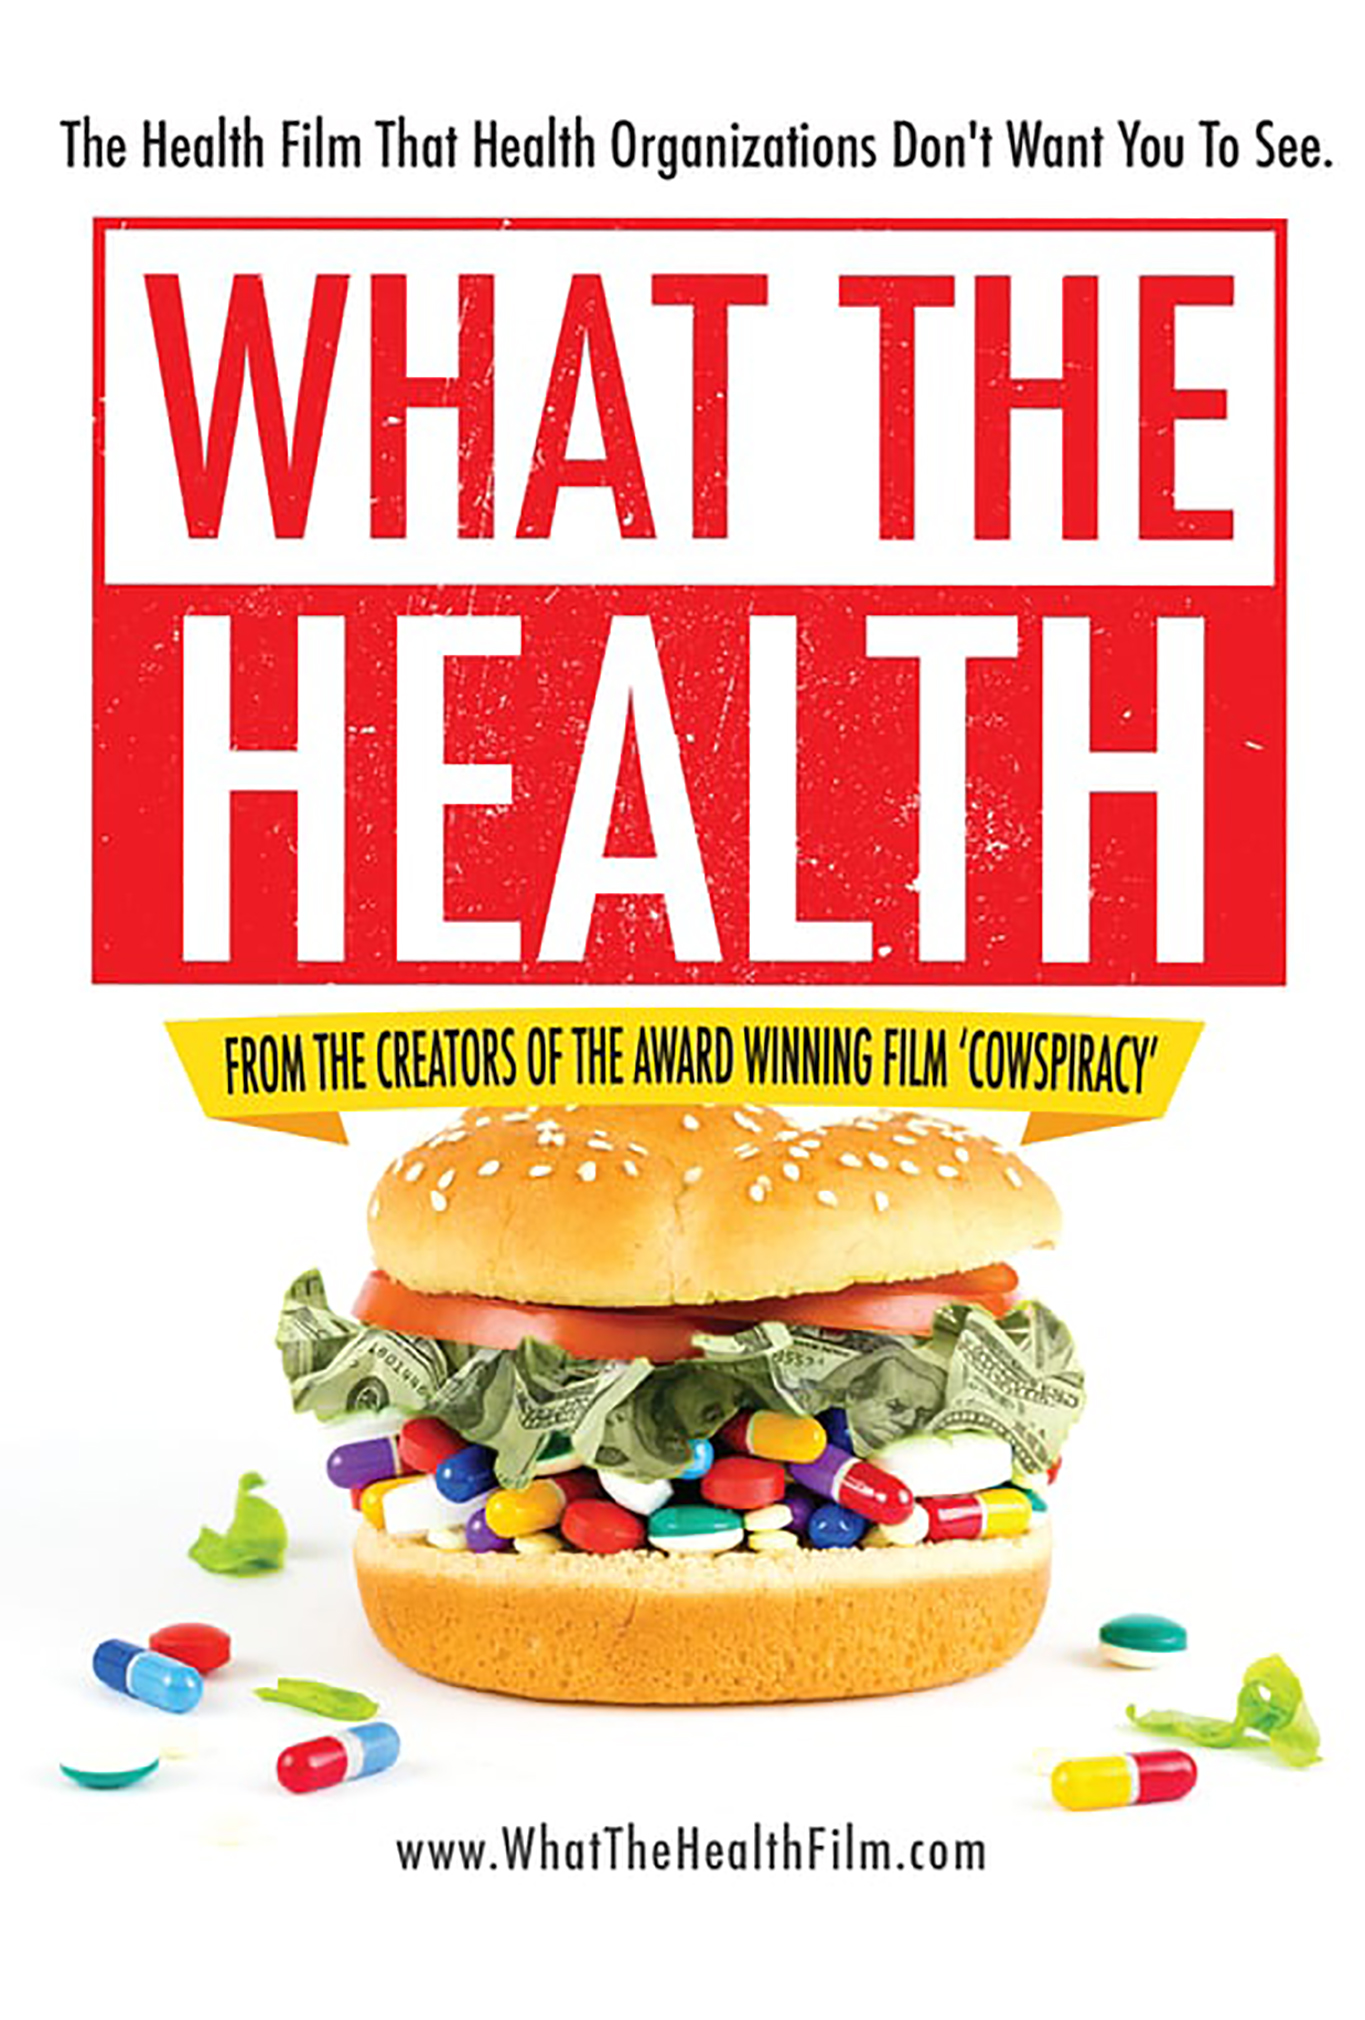 The film exposes the collusion and corruption in government and big business that is costing us trillions of healthcare dollars, and keeping us sick. What The Health is a surprising, and at times hilarious, investigative documentary that will be an eye-opener for everyone concerned about our nation's health and how big business influences it.